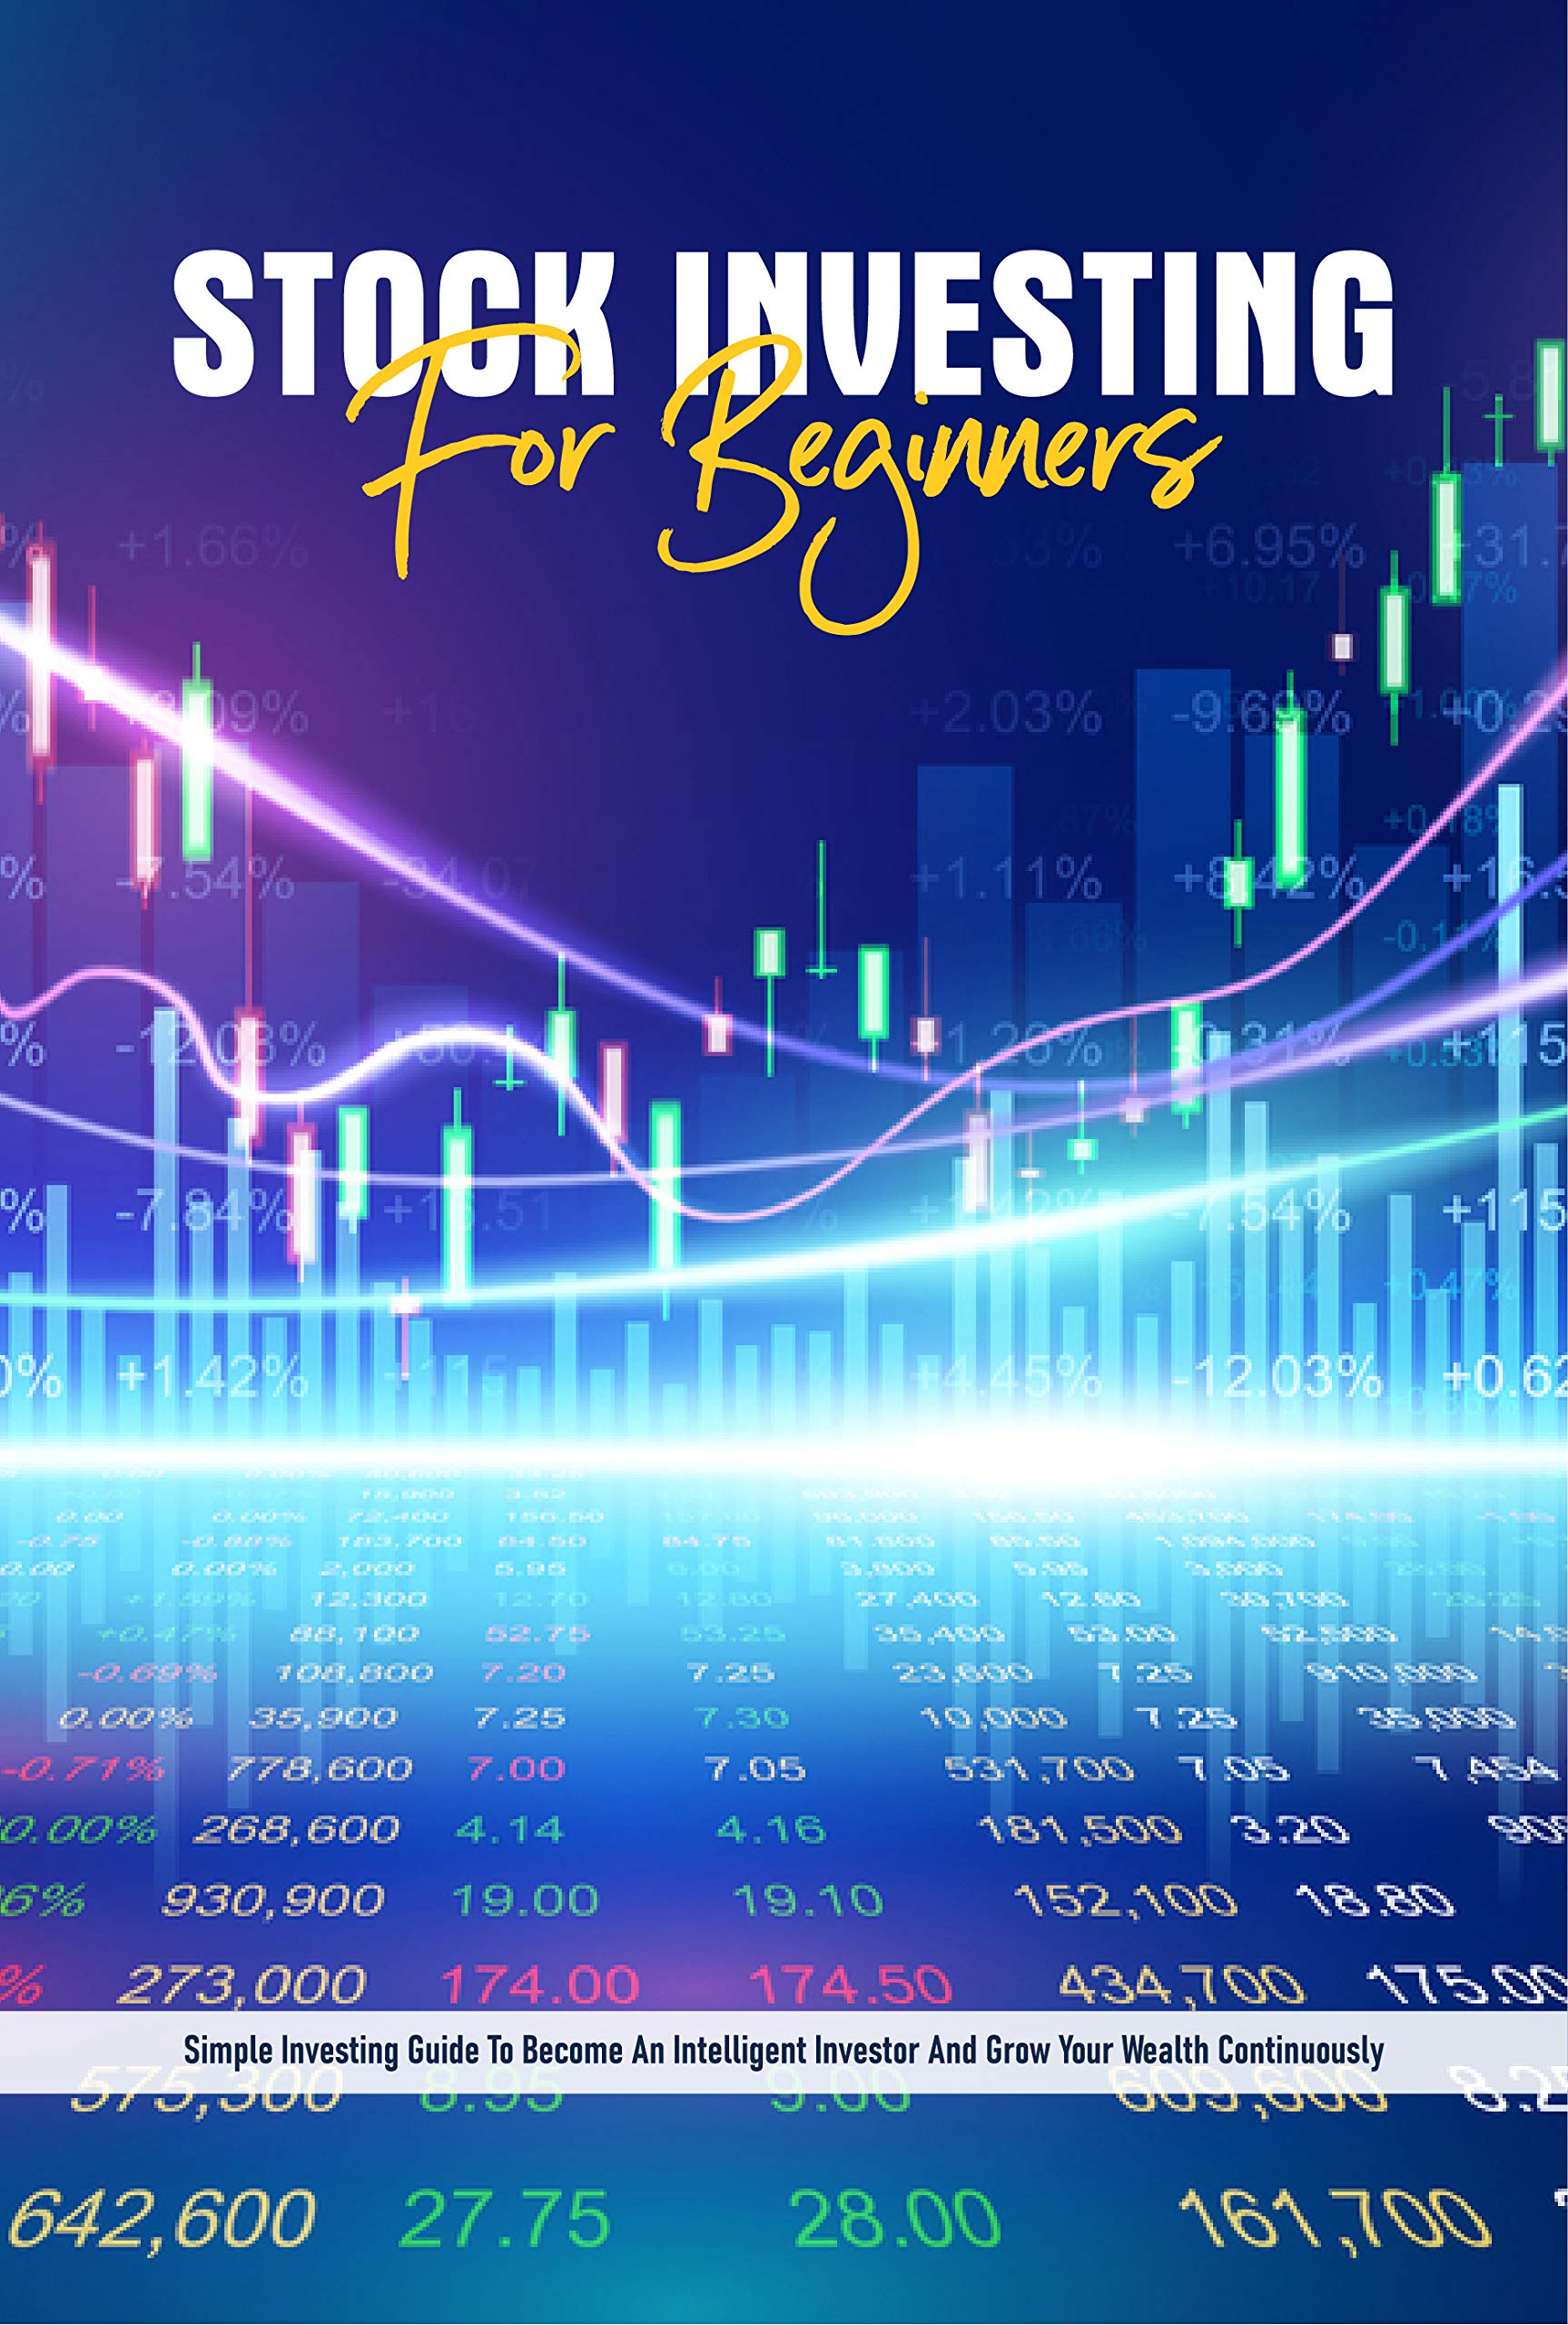 Stock Investing For Beginners: Simple Investing Guide To Become An Intelligent Investor And Grow Your Wealth Continuously: Stock Market Investing For Dummies